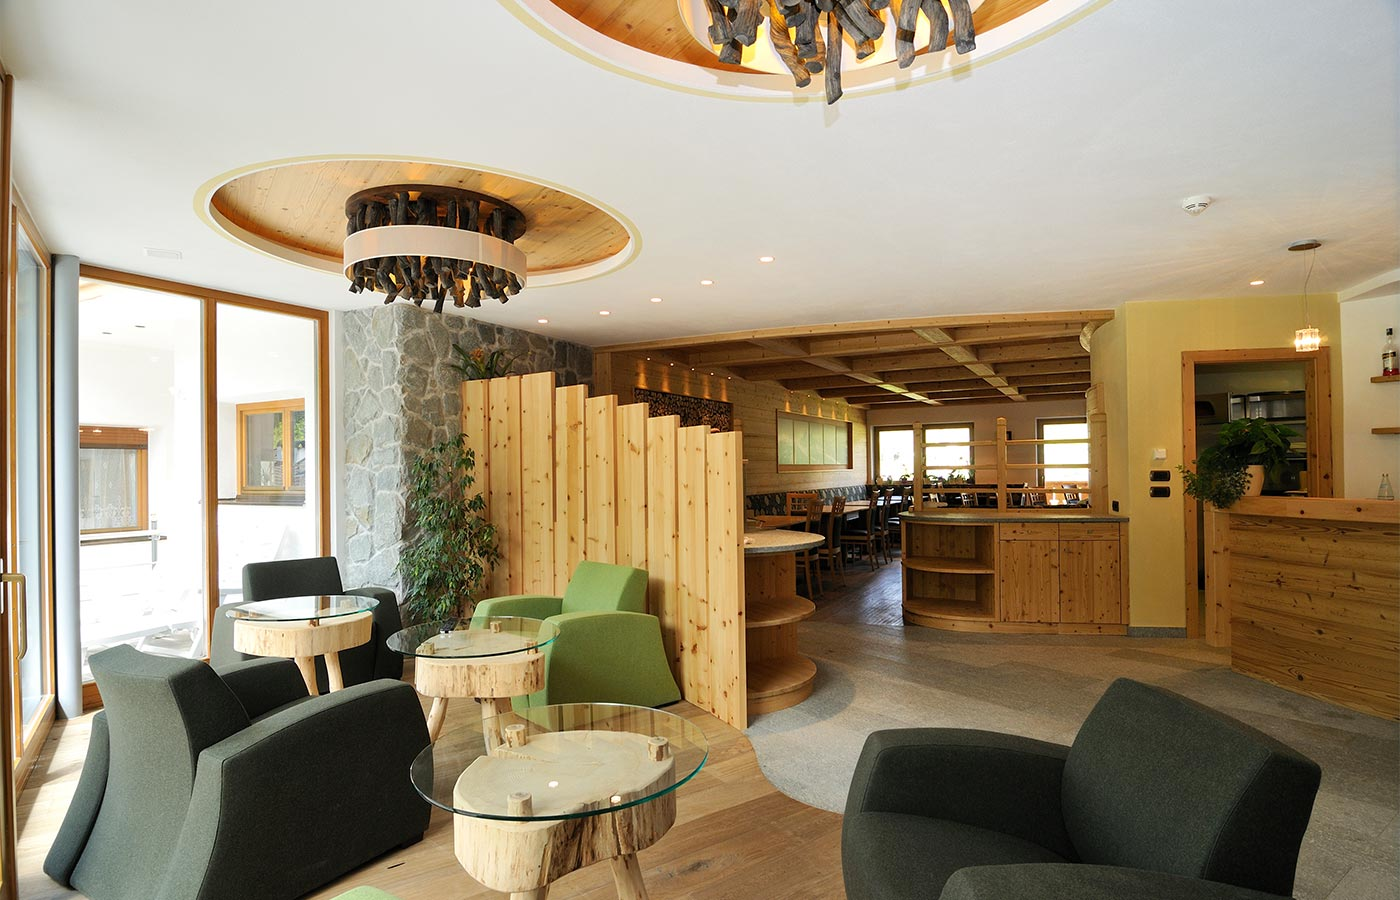 Details of the dining room of the Hotel in Selva Val Gardena